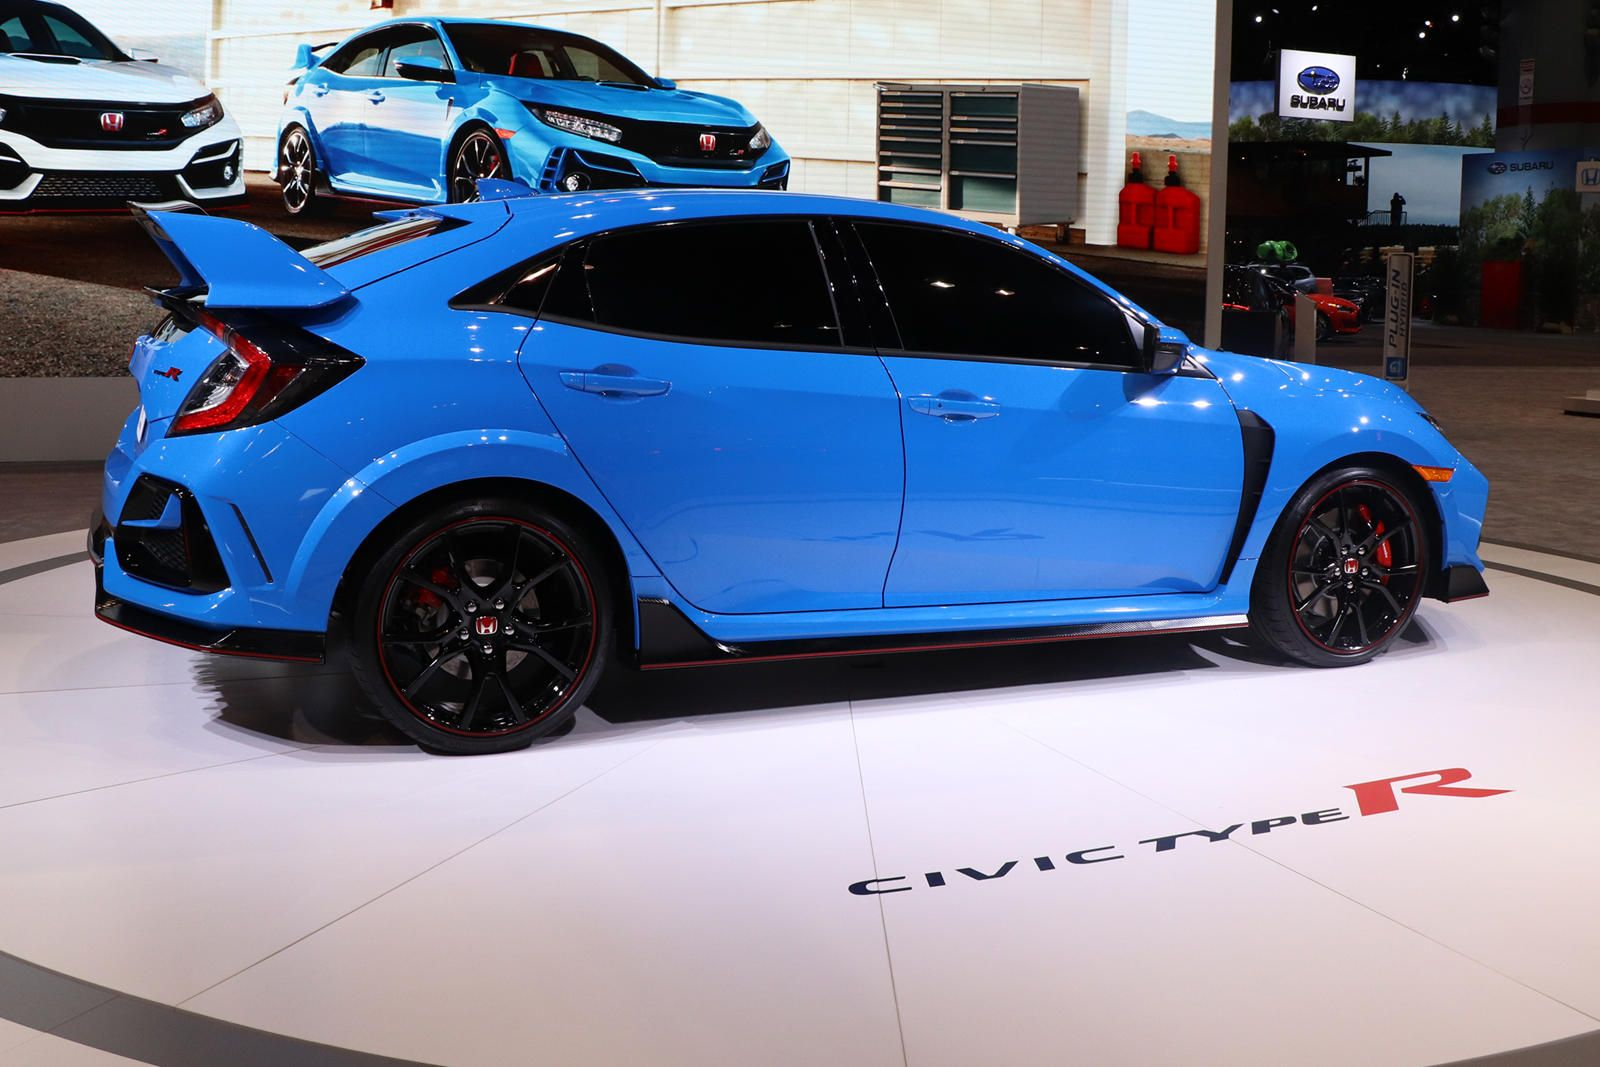 2020 Honda Civic Type R Arrives In Chicago With Outrageous